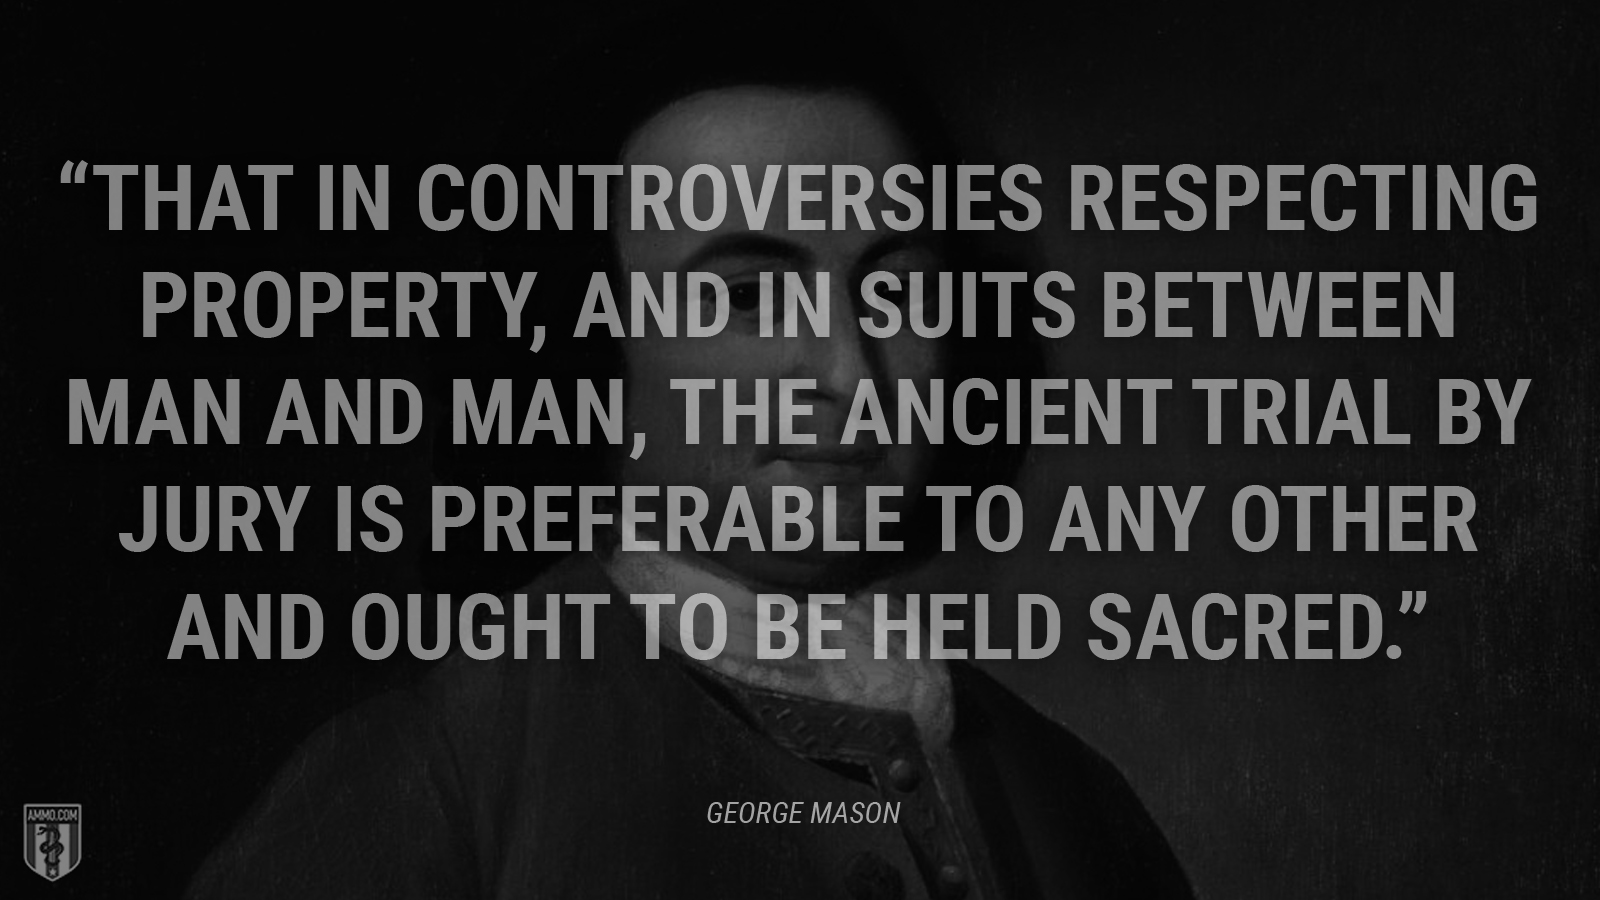 """""""That in controversies respecting property, and in suits between man and man, the ancient trial by jury is preferable to any other and ought to be held sacred."""" - George Mason"""